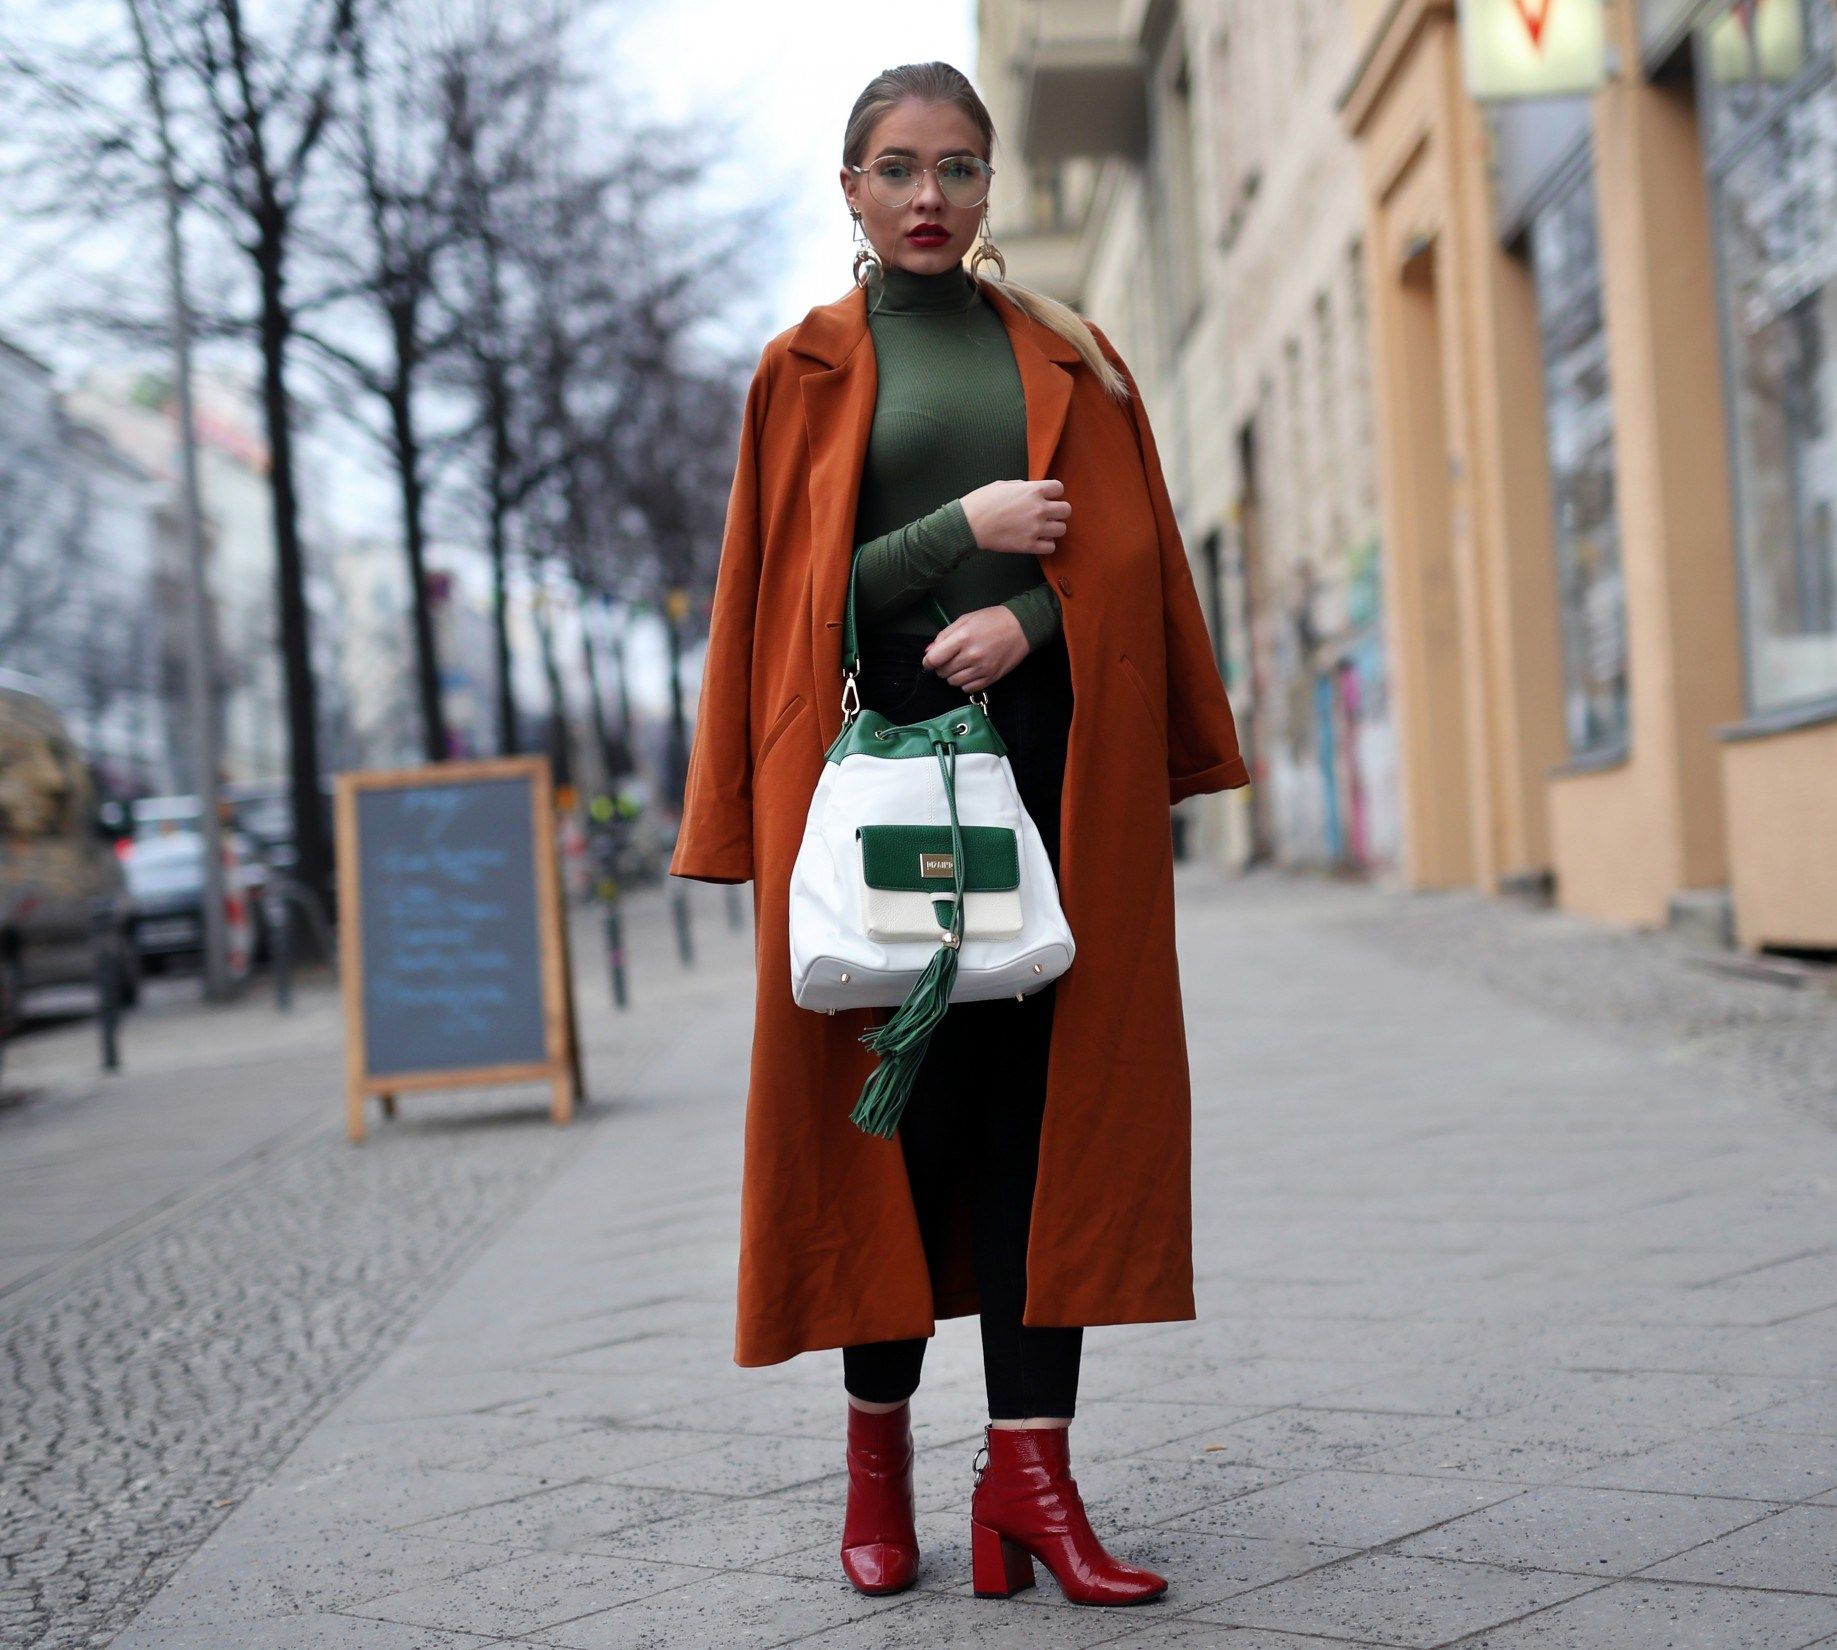 During Fashion Week a/w 2018  #style #streetstyle #fashion #streetfashion #street #fashionweek #berlin #mbfw #mbfwb #moda #mode